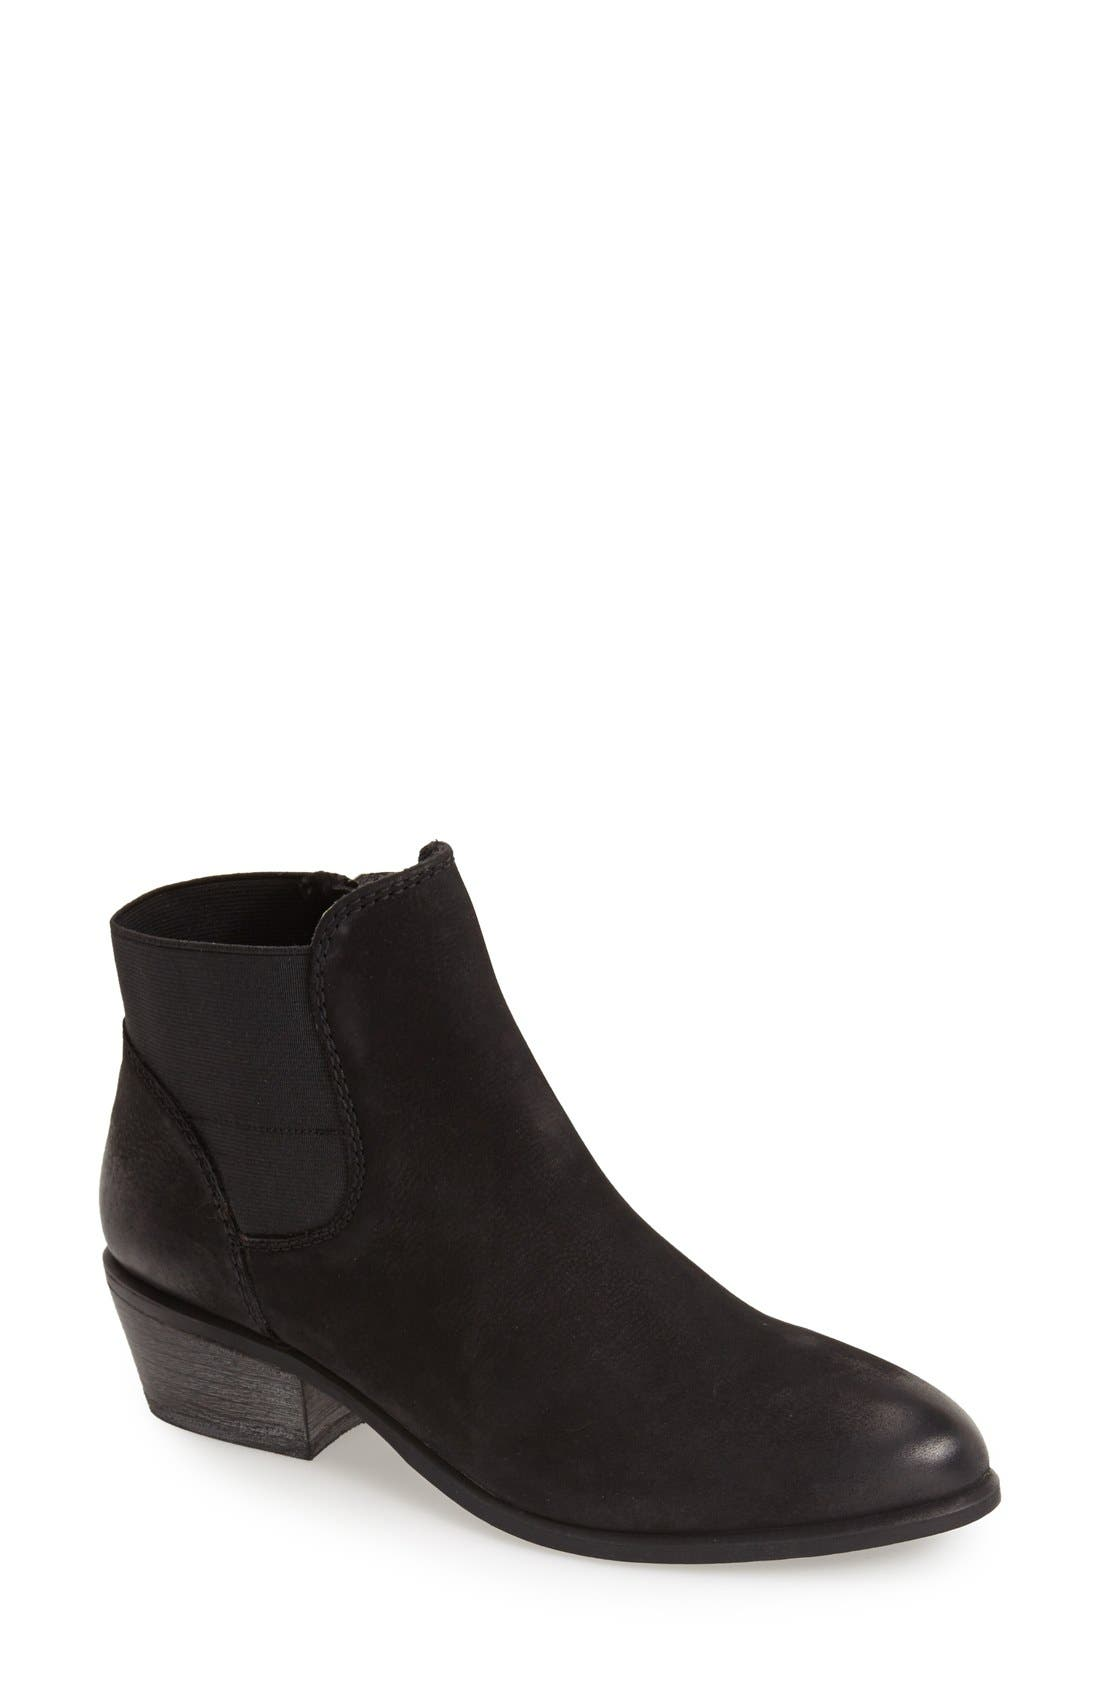 'Rozamare' Leather Ankle Bootie,                         Main,                         color, 001